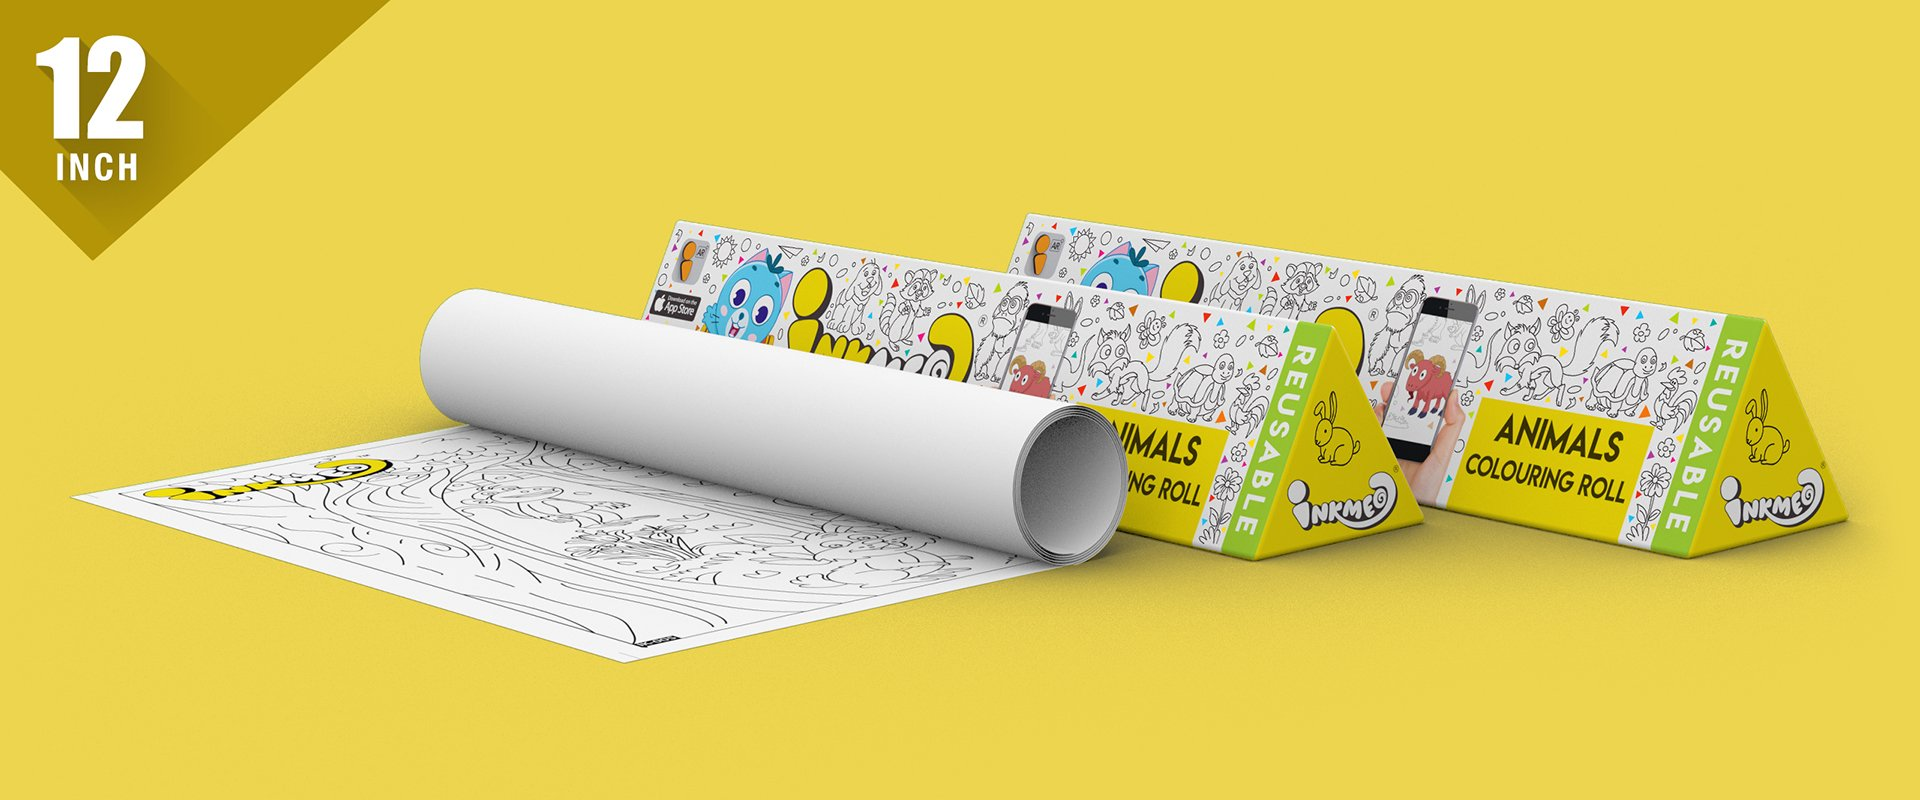 Animals Colouring Roll (12 inch) - Inkmeo